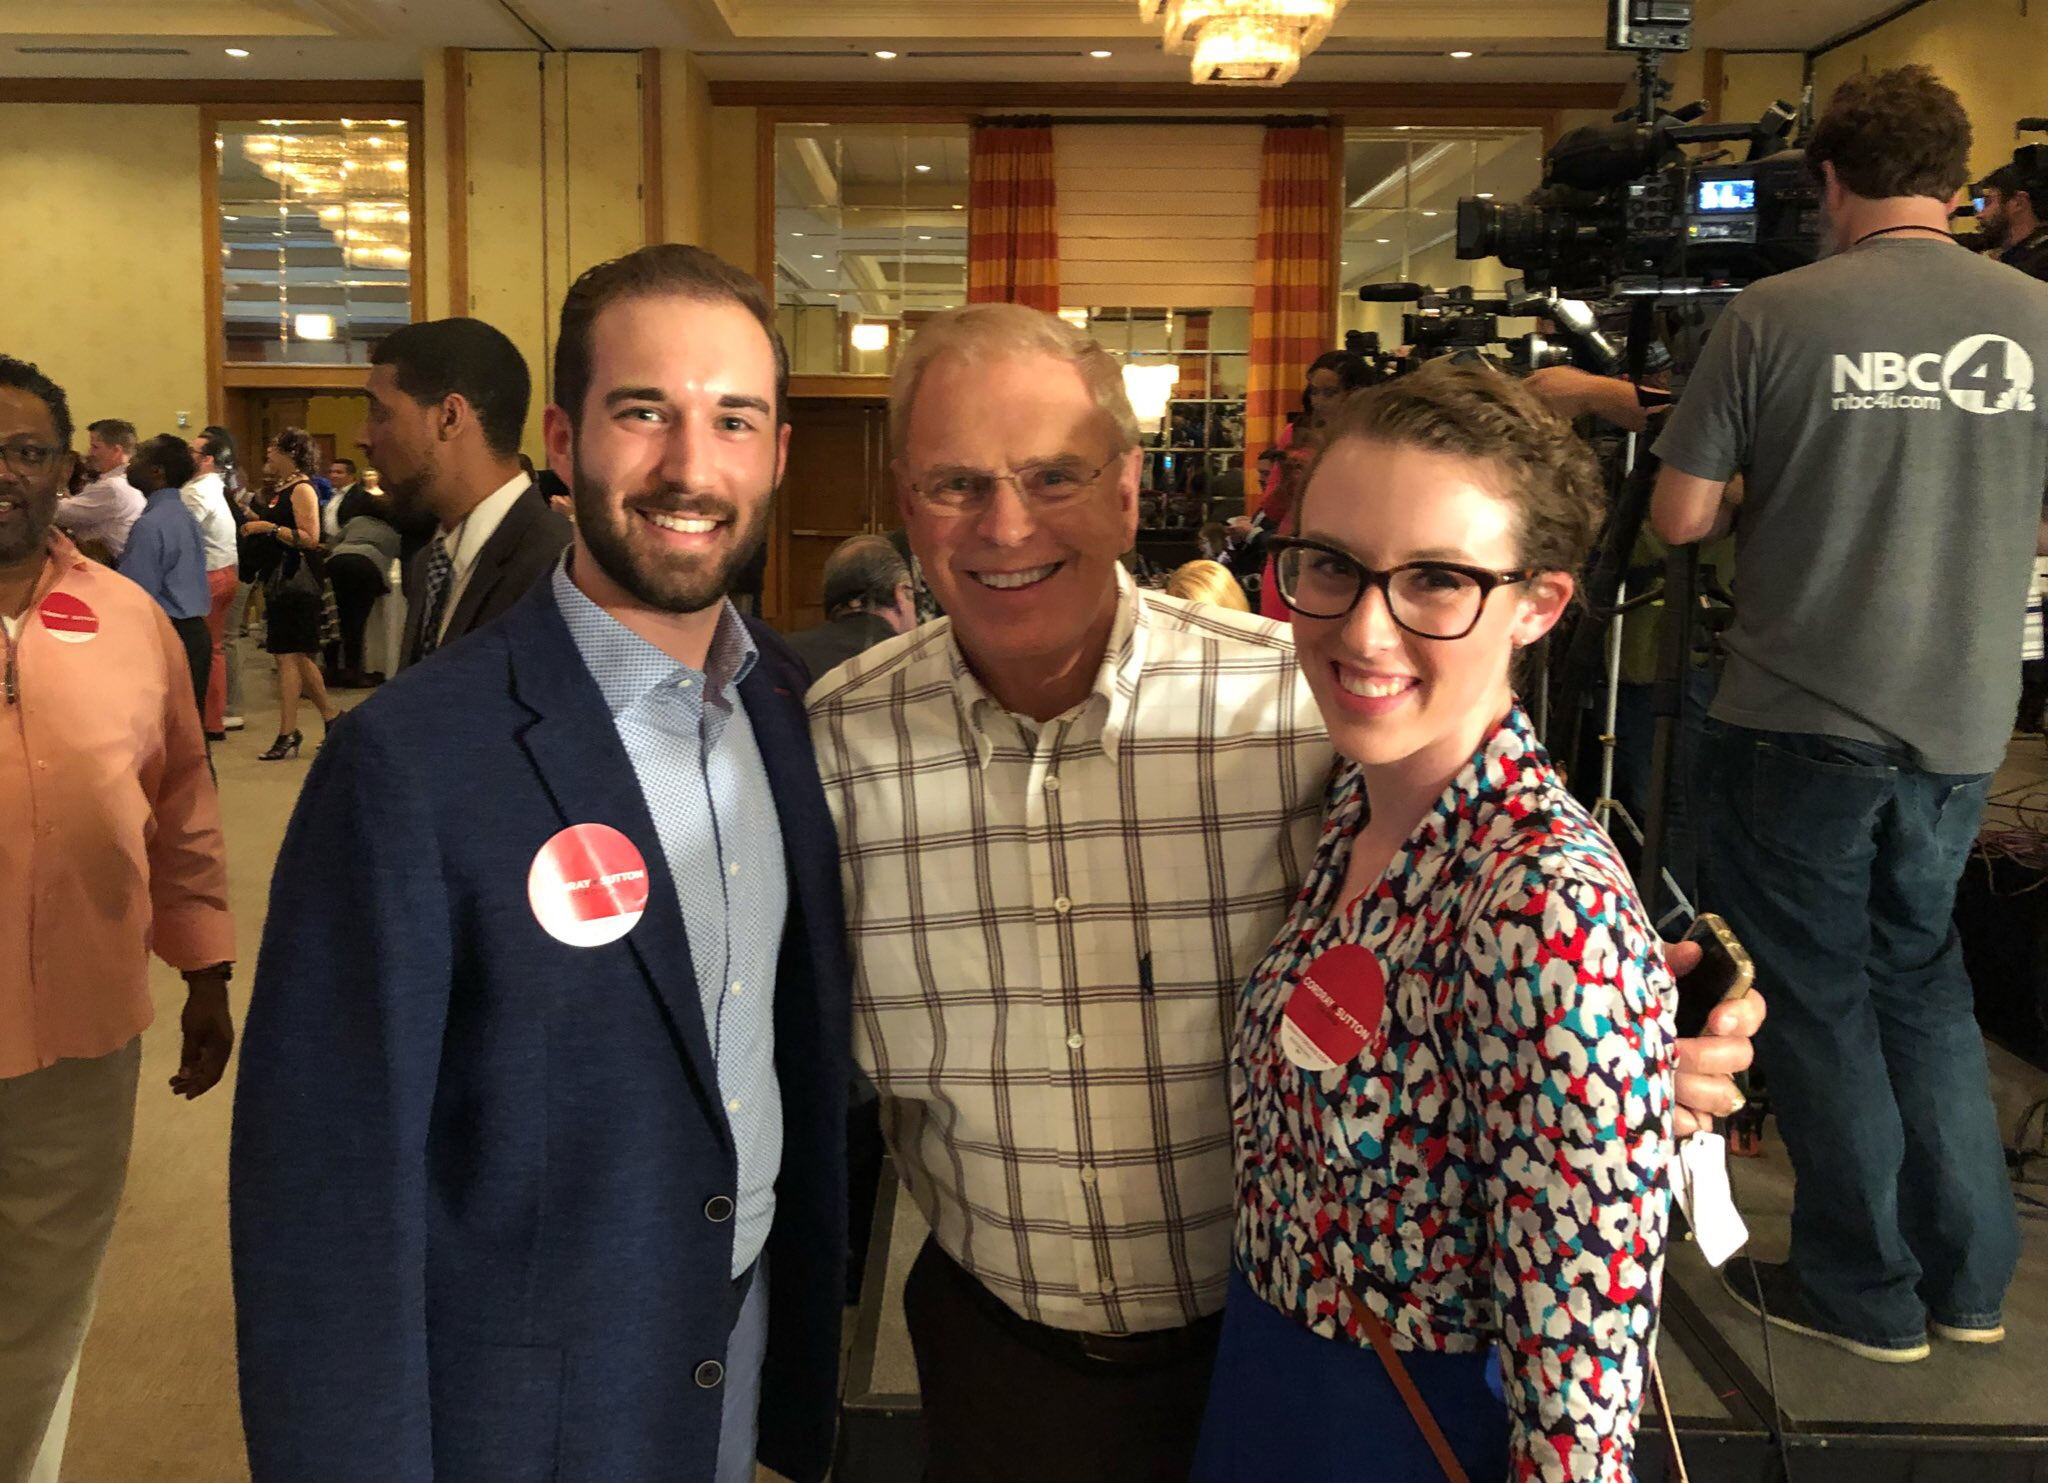 With former Ohio governor Ted Strickland